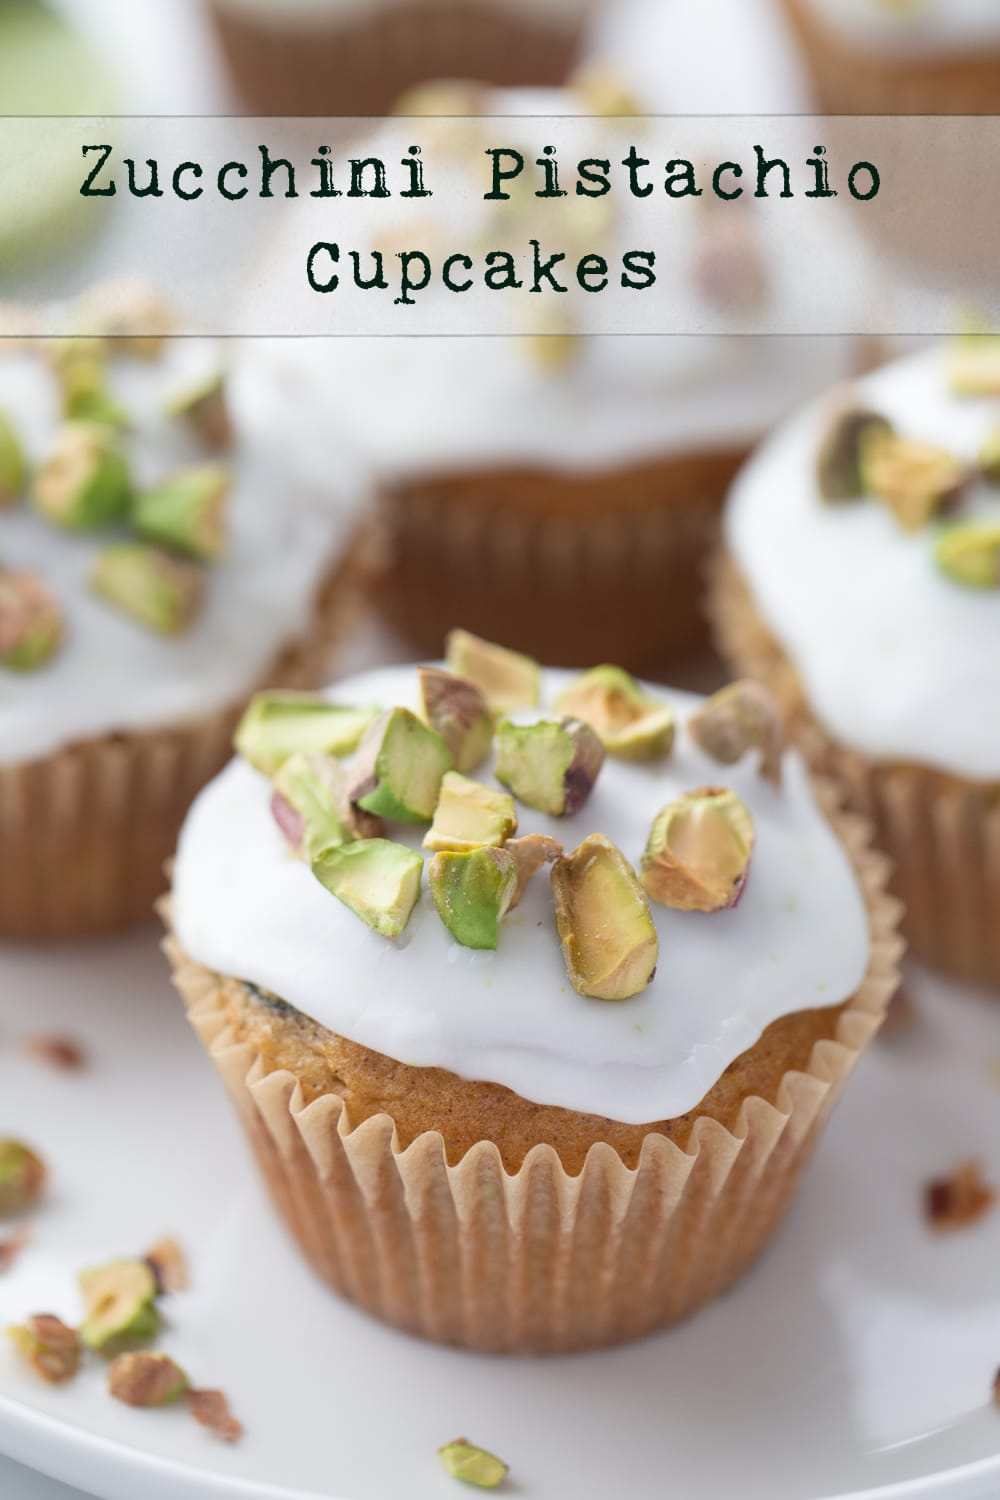 Zucchini Pistachio Cupcakes - an irresistible spiced dessert with a zingy lime icing and topped with crunchy pistachios. You'll actually forget you're eating your veggies too. via @cmpollak1